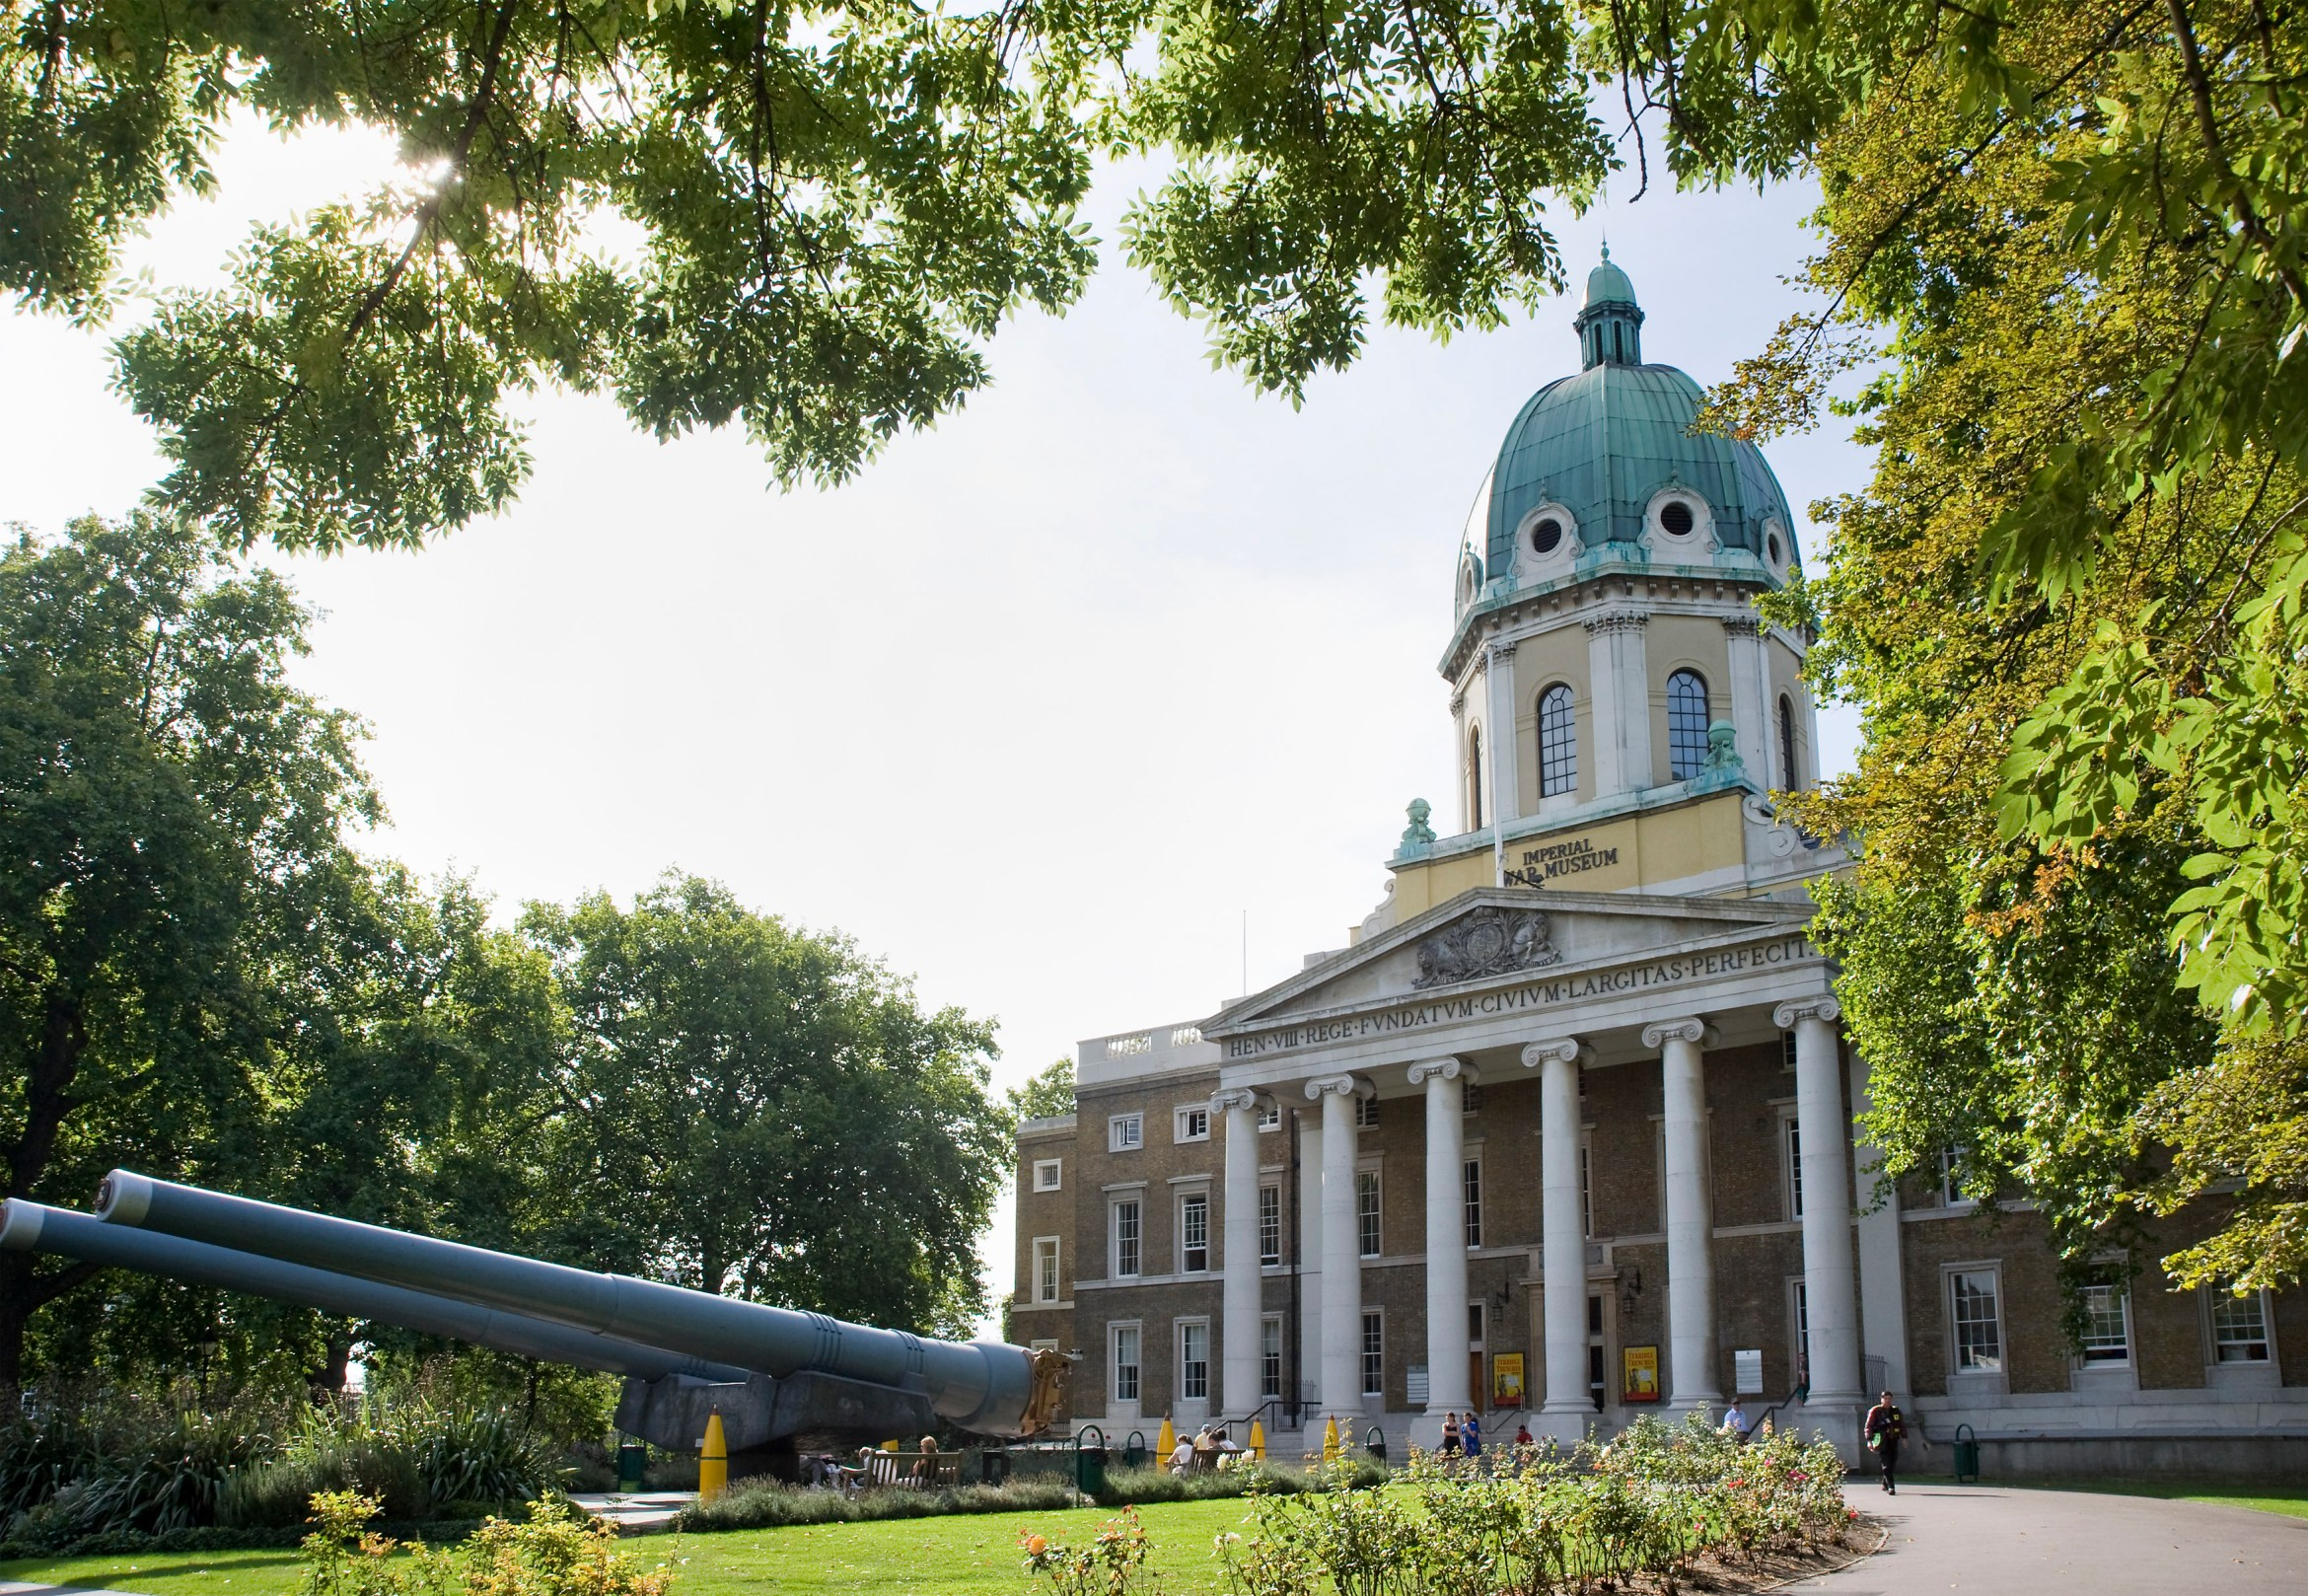 Exterior view of the front of IWM Main building